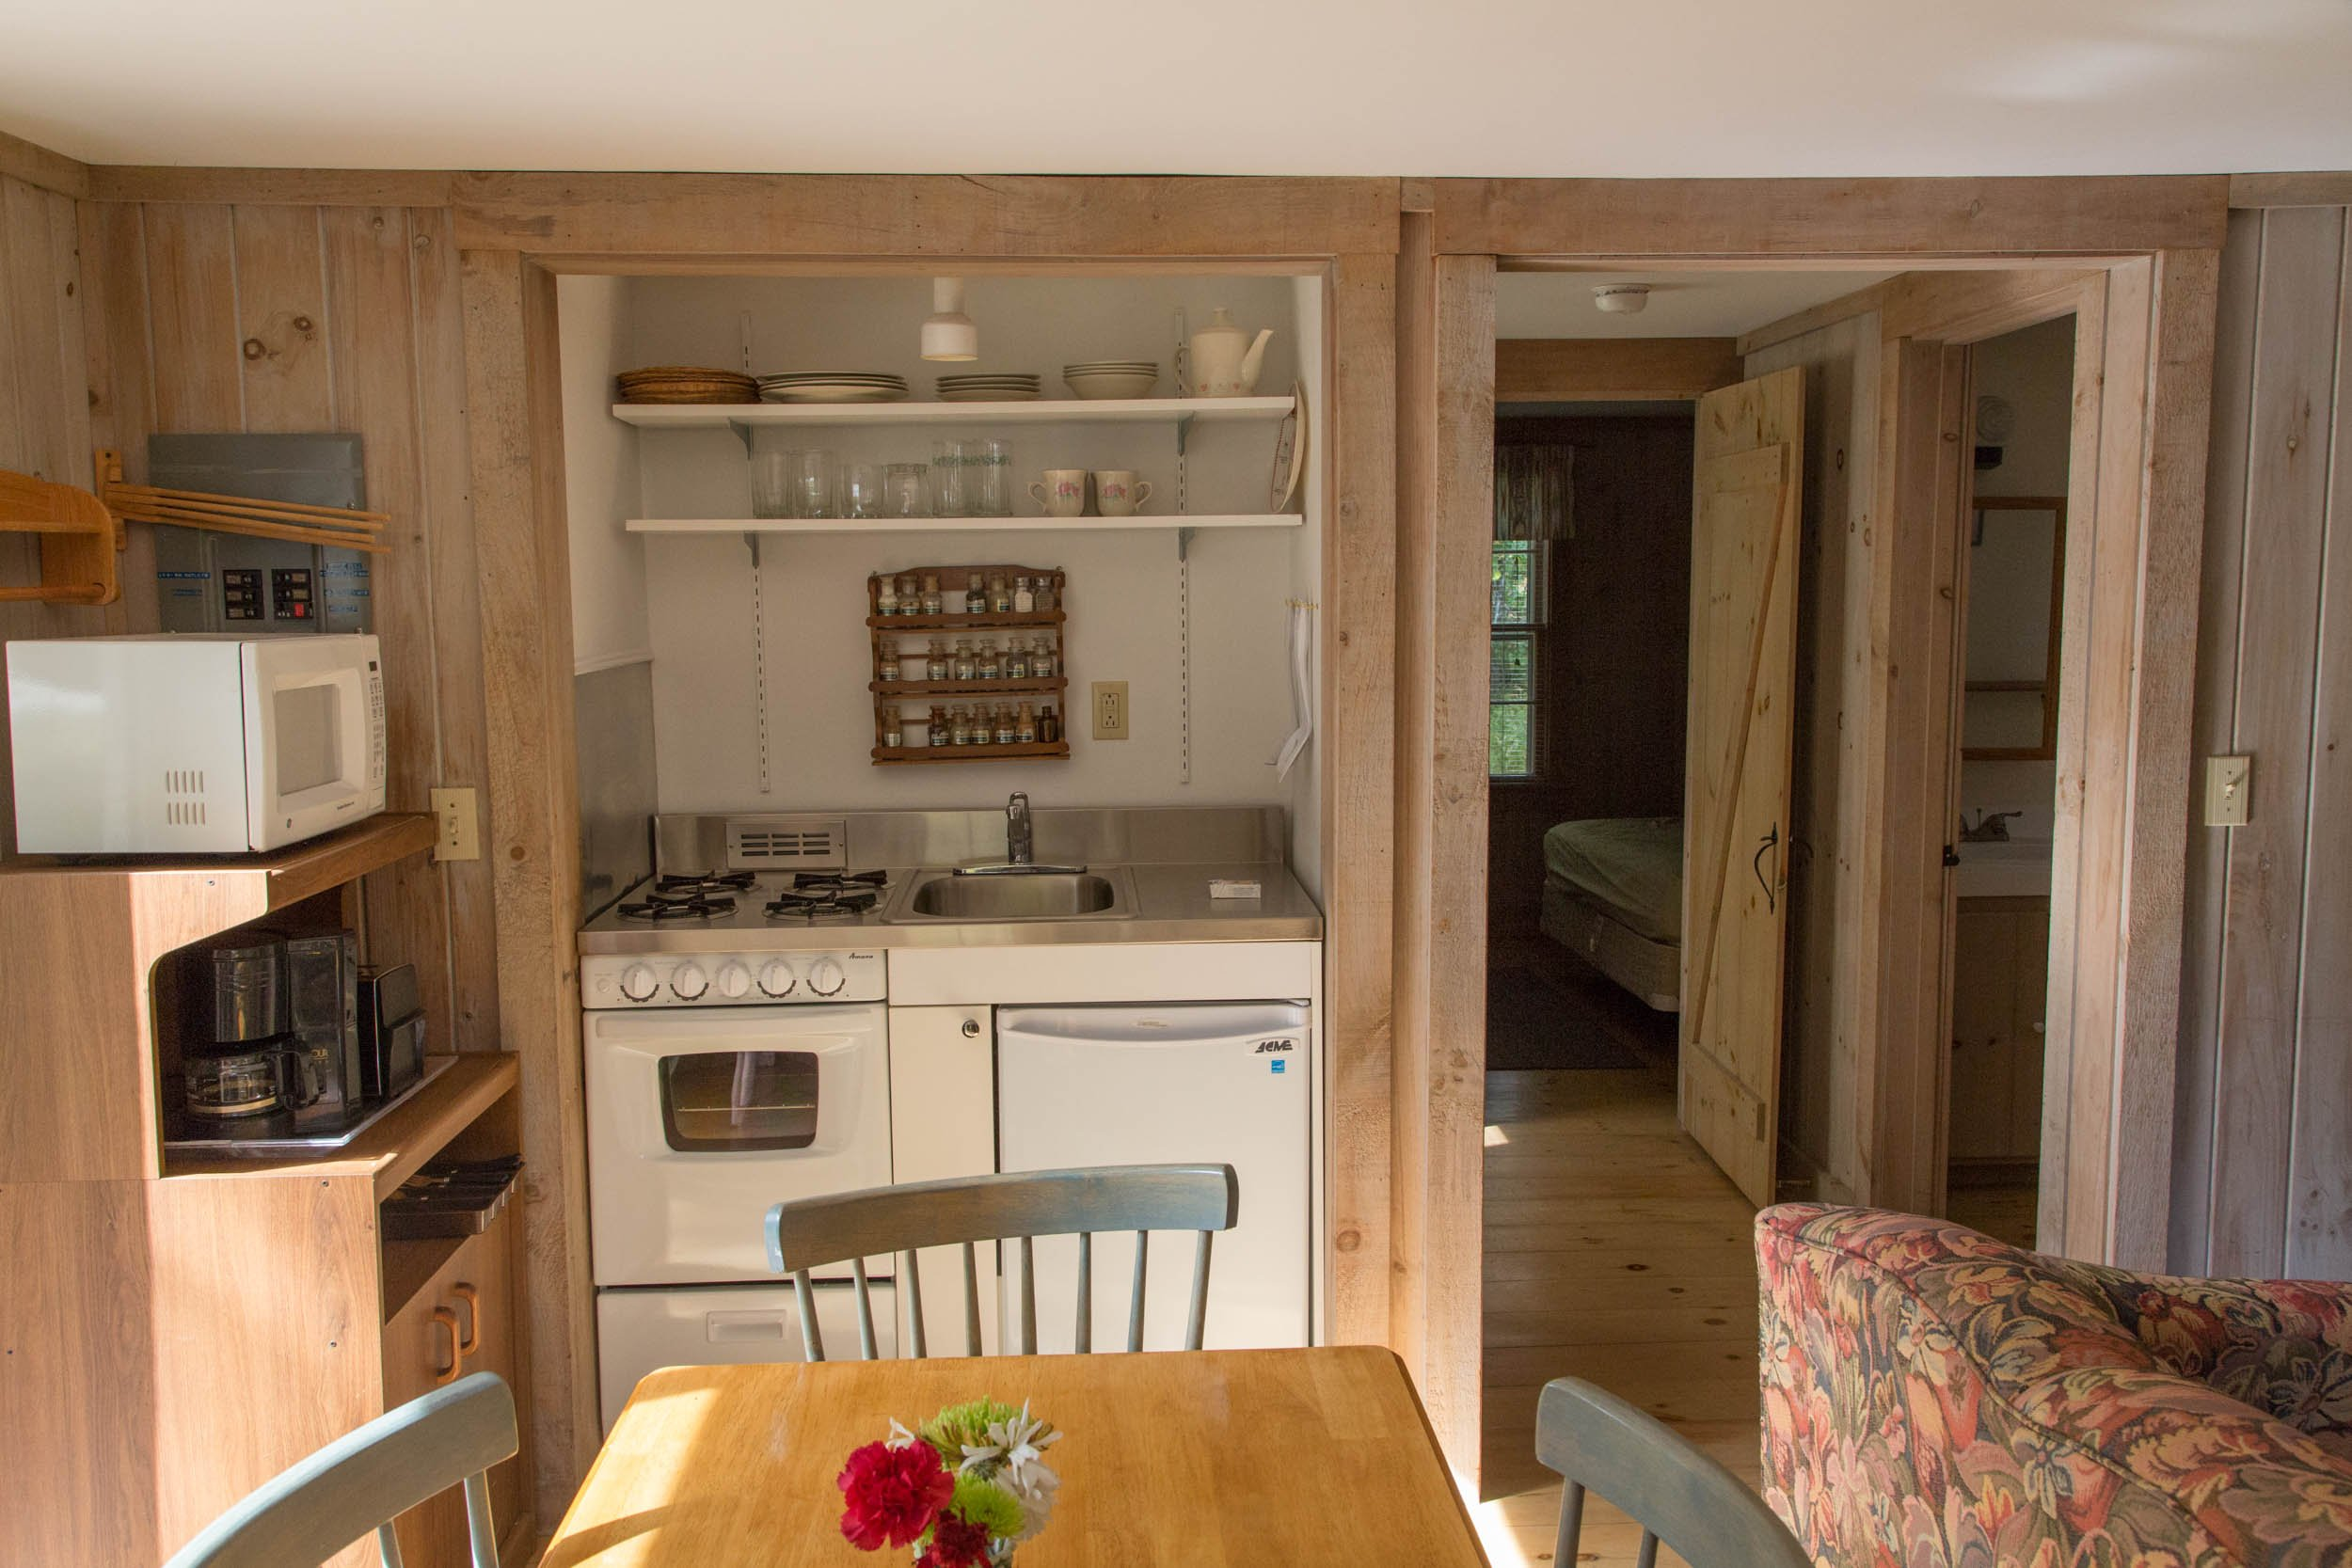 The cottage comes with a fully equipped kitchenette.